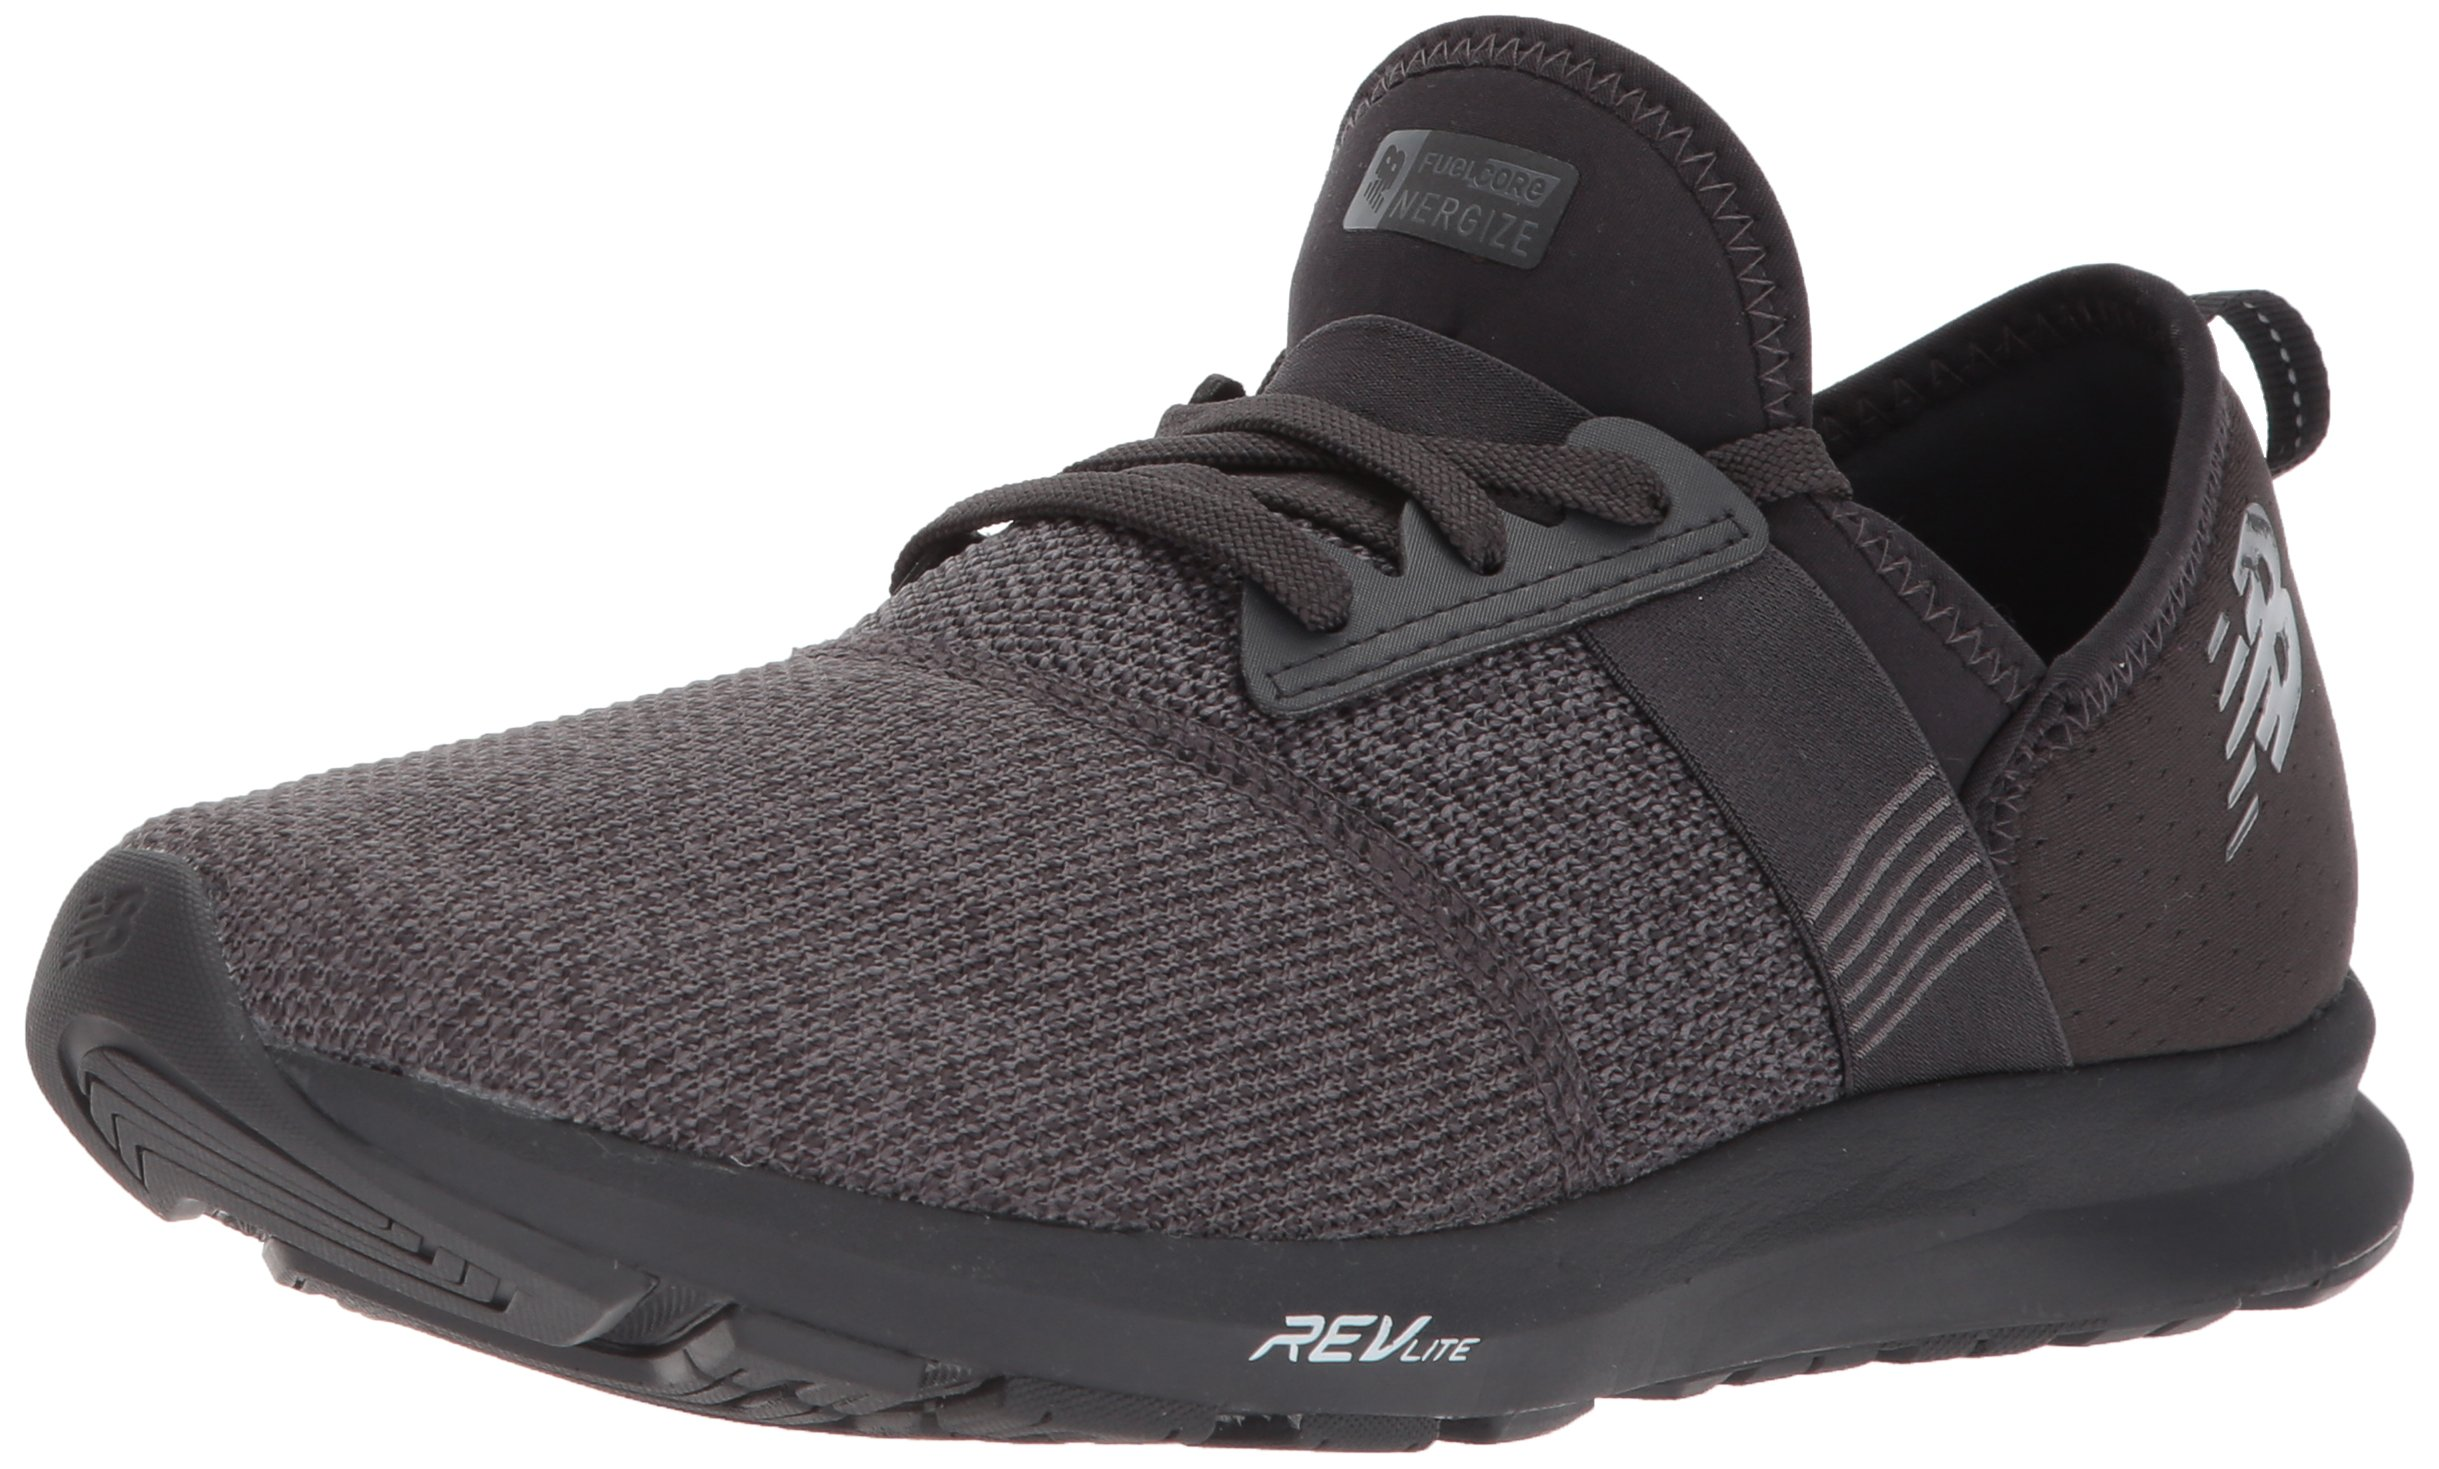 New Balance Women's FuelCore Nergize v1 FuelCore Training Shoe, Black, 8.5 B US